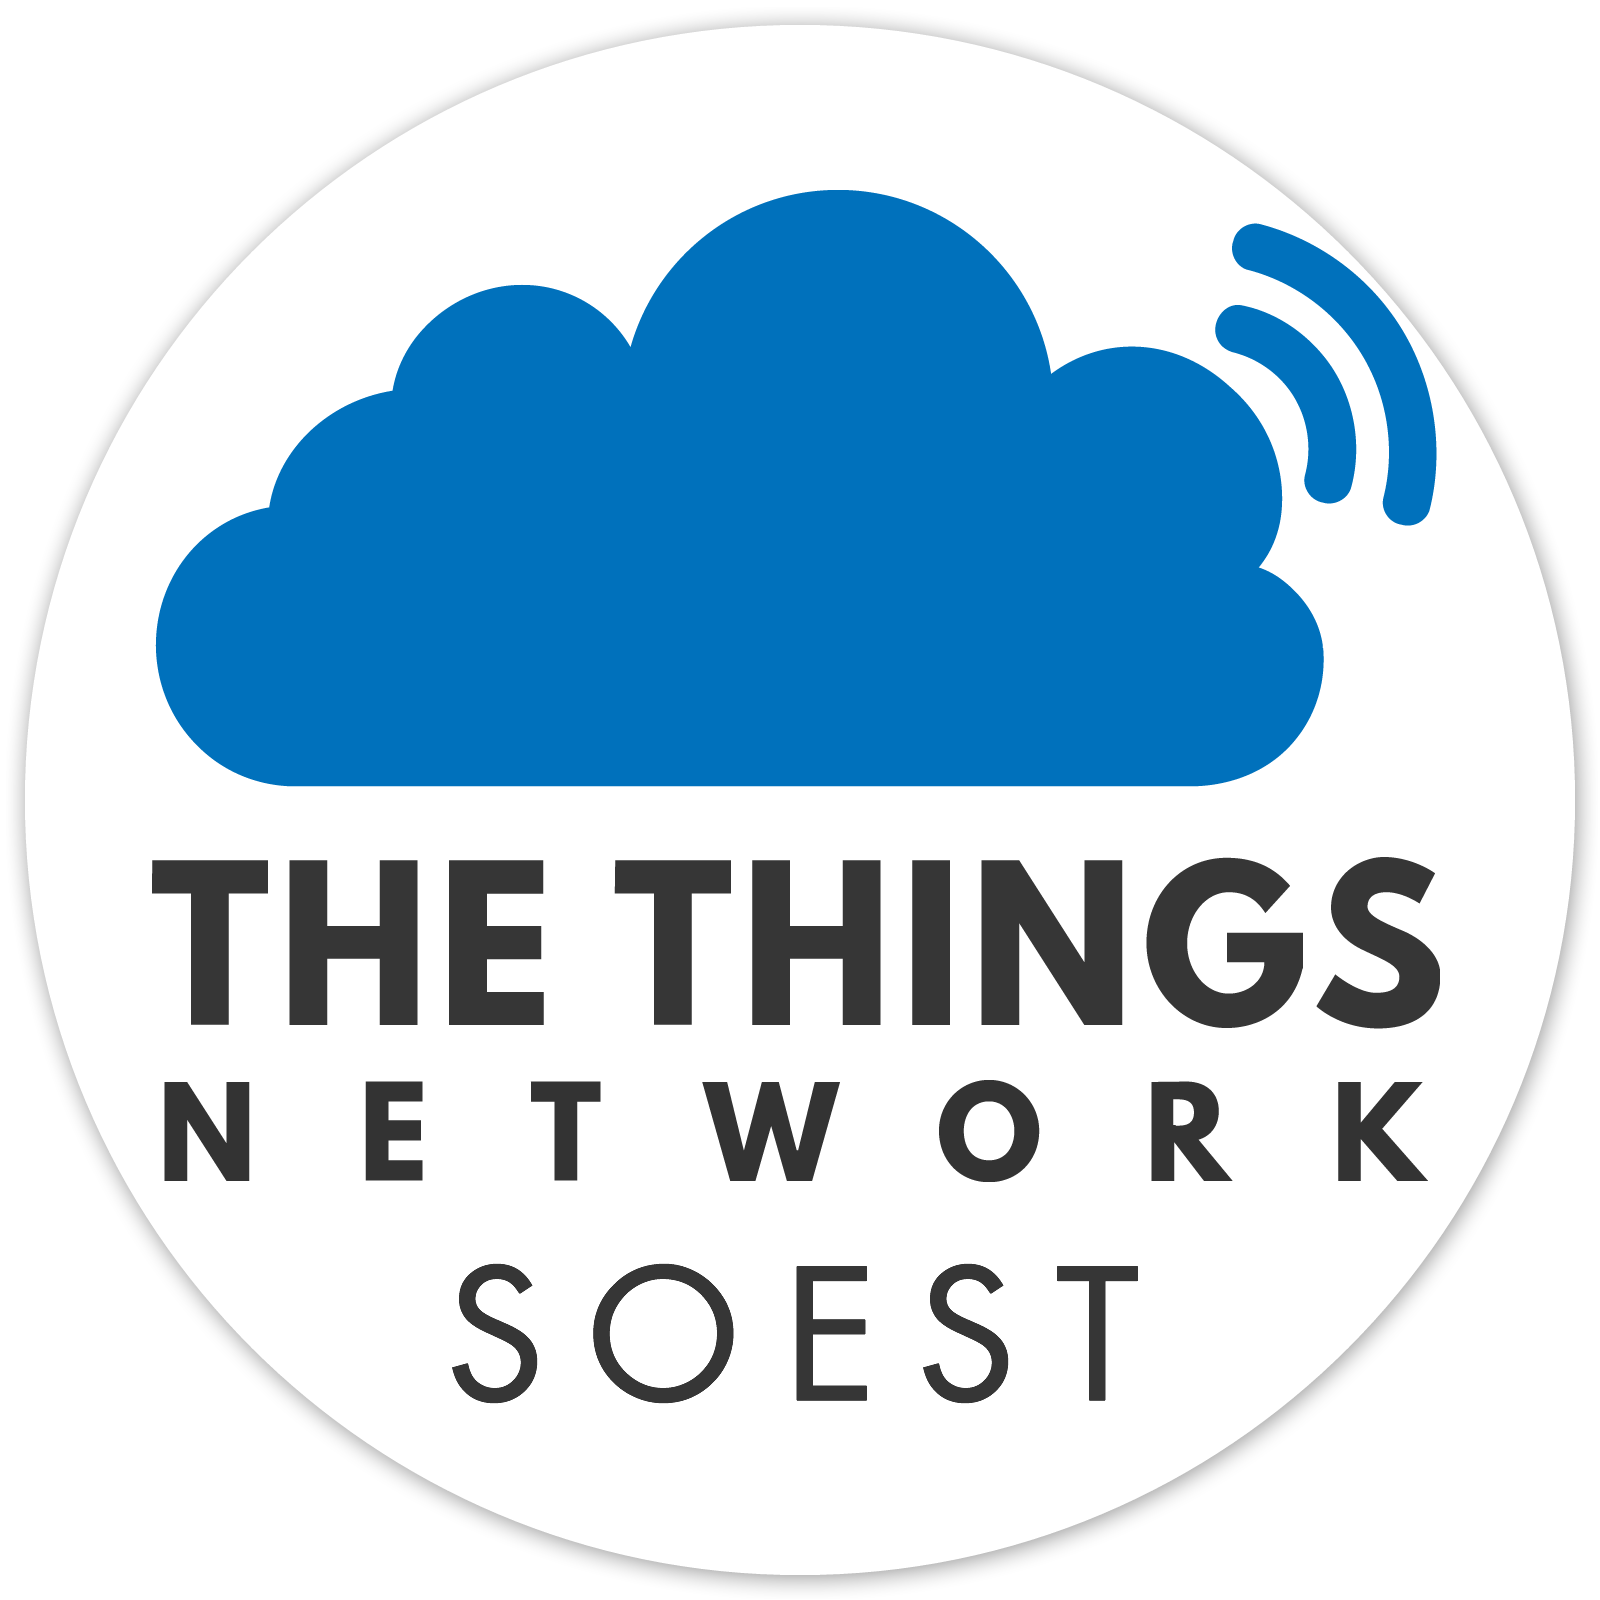 the things network soest